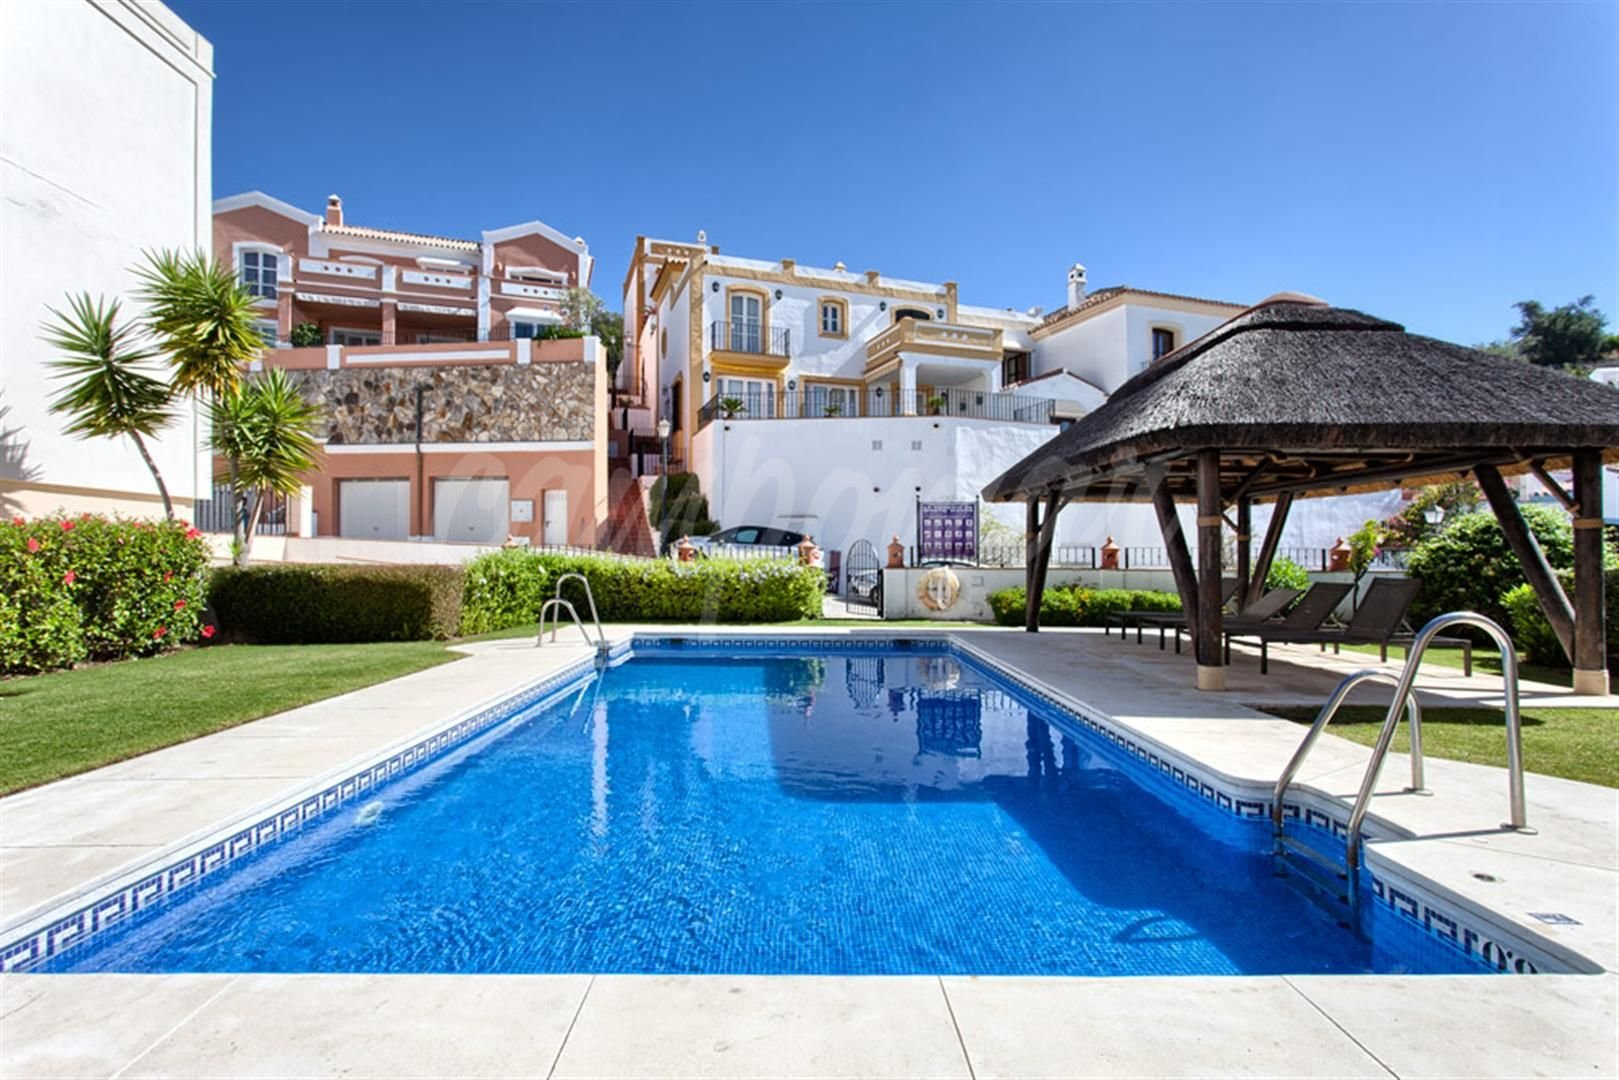 Townhouse in fantastic urbanisation in Benahavis